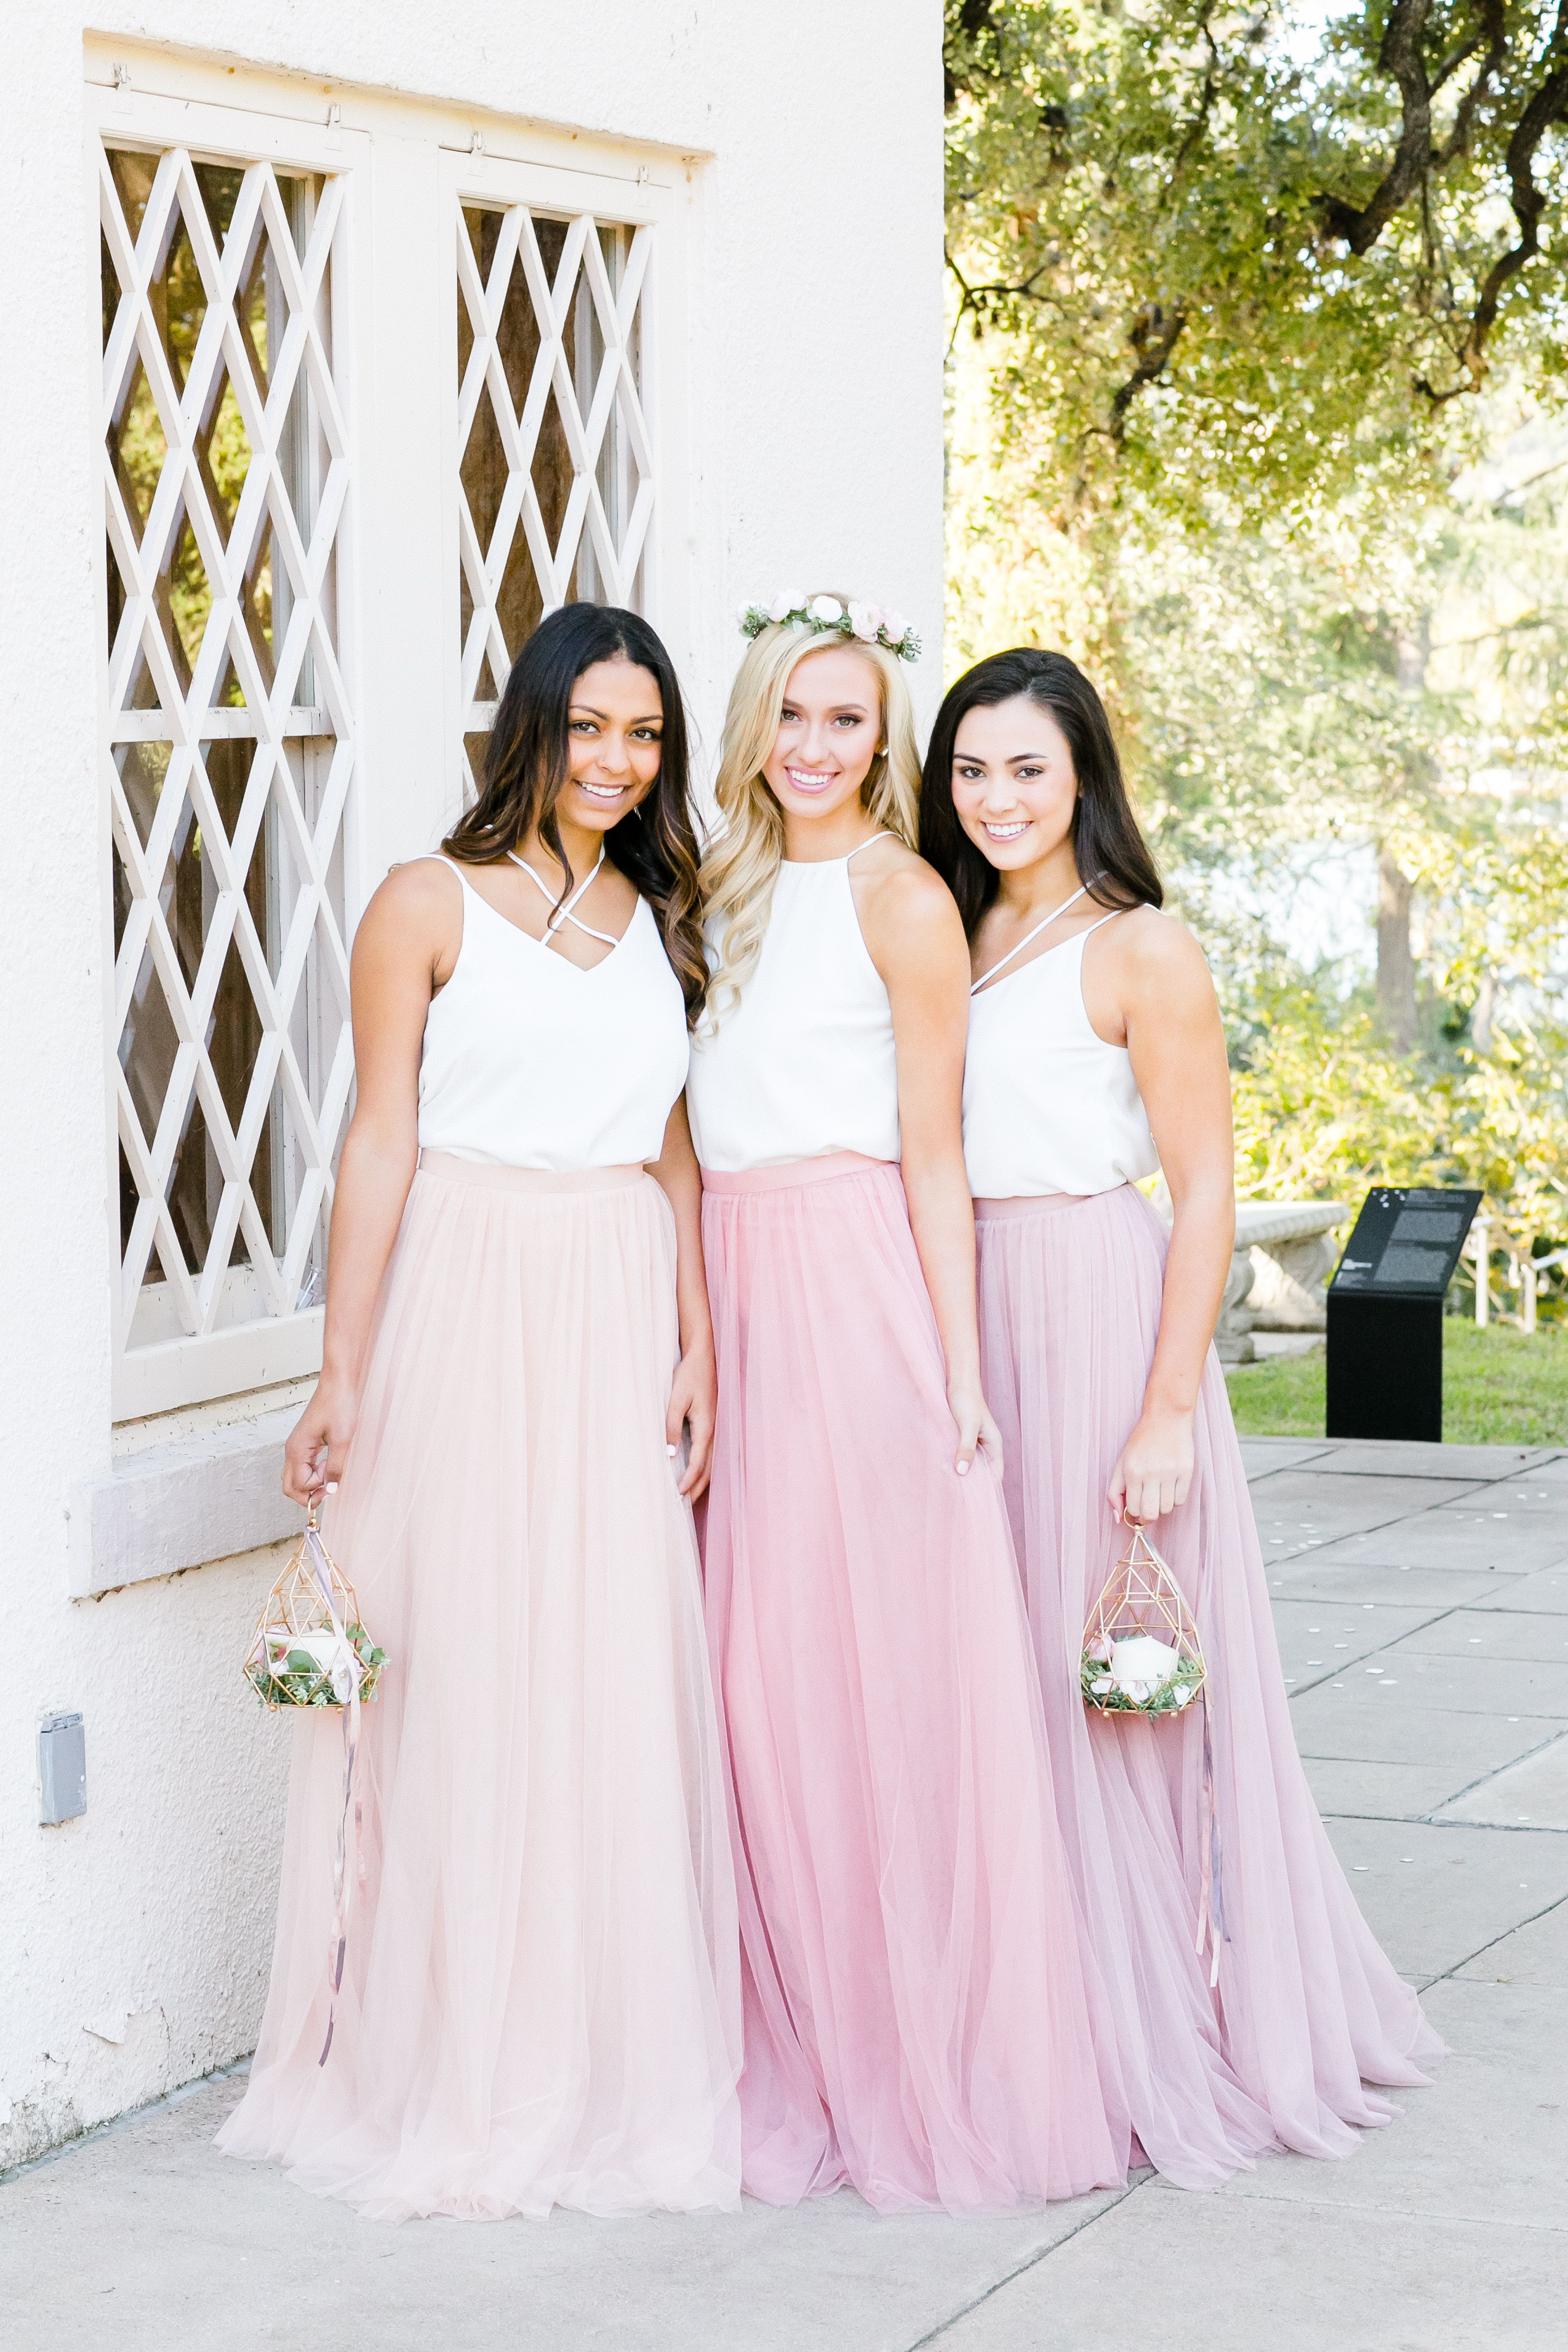 Mix And Match Revelry Bridesmaid Dresses And Separates Revelry Has A Wide Select Bridesmaid Dresses Separates Bohemian Bridesmaid Dress Bridesmaid Dresses Boho